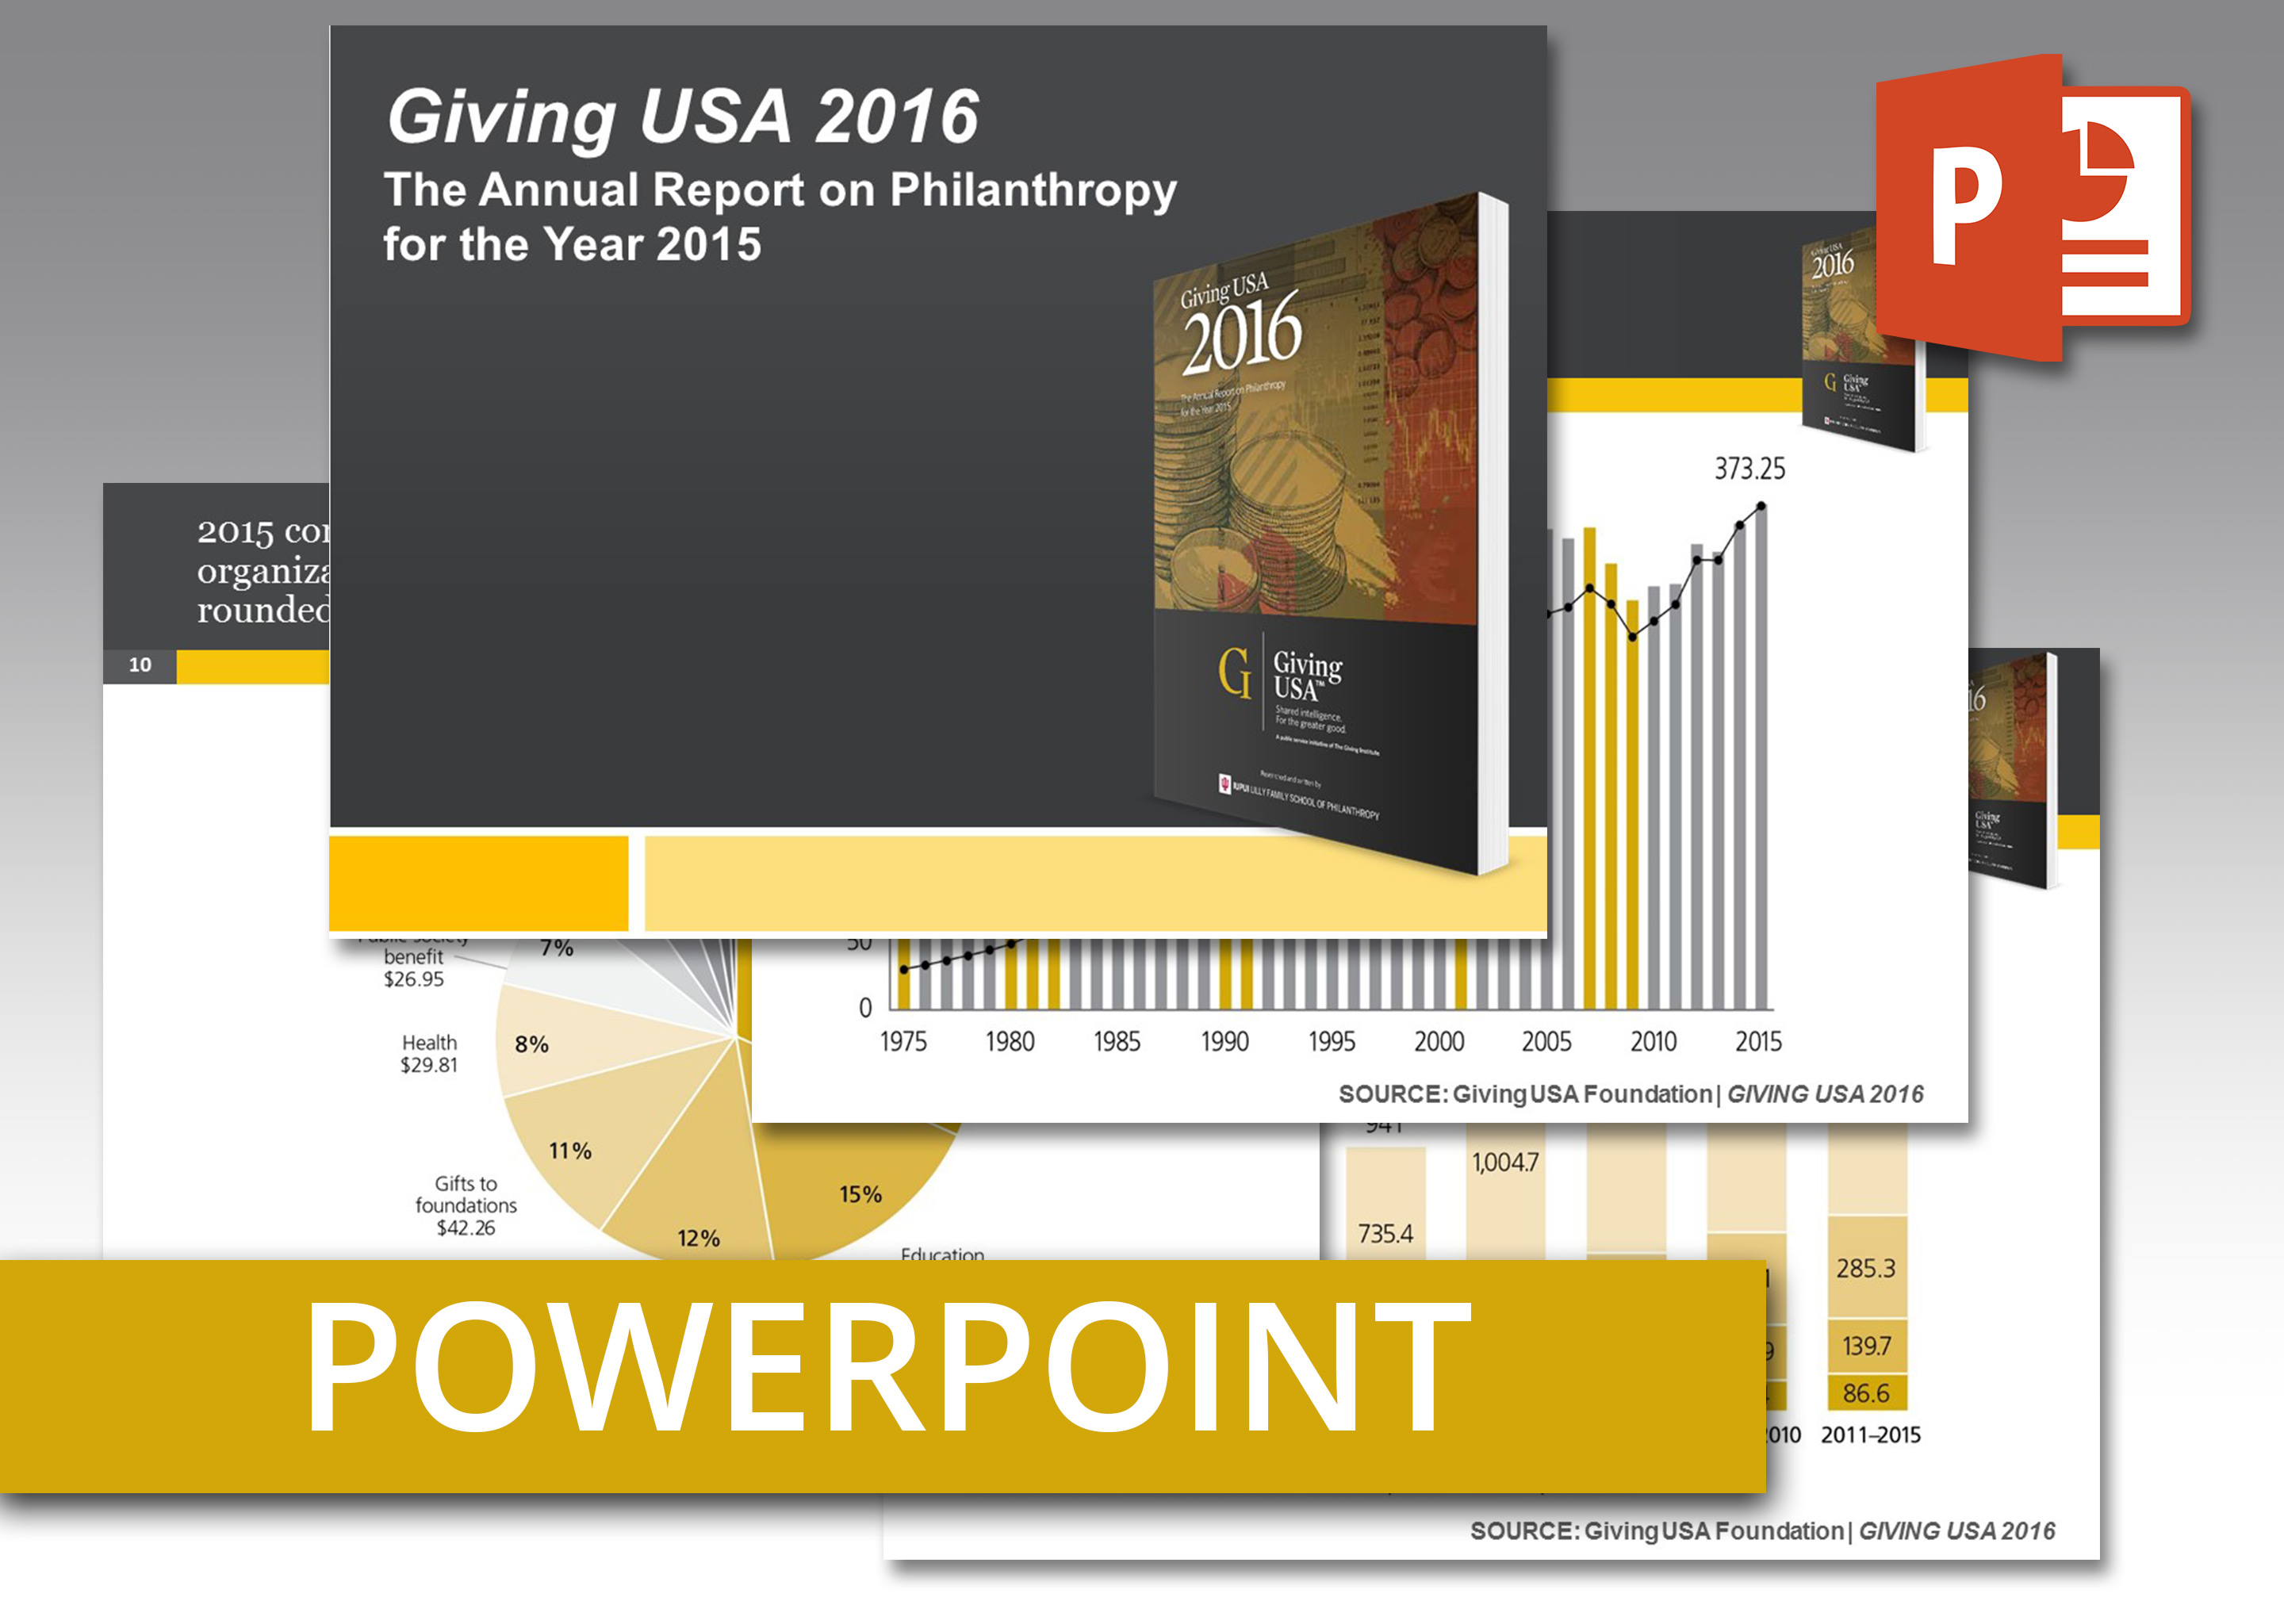 Coolmathgamesus  Pleasing Giving Usa  Powerpoint An Easytouse Presentation Of Report  With Hot Giving Usa  Powerpoint An Easytouse Presentation Of Report Findings Including Talking Points With Endearing Objectives Of Powerpoint Presentation Also Business Case Template Powerpoint In Addition How To Open Powerpoint And Powerpoint Decks As Well As Problem Solving Powerpoint Ks Additionally Rehearse Timings Powerpoint From Givingusaorg With Coolmathgamesus  Hot Giving Usa  Powerpoint An Easytouse Presentation Of Report  With Endearing Giving Usa  Powerpoint An Easytouse Presentation Of Report Findings Including Talking Points And Pleasing Objectives Of Powerpoint Presentation Also Business Case Template Powerpoint In Addition How To Open Powerpoint From Givingusaorg